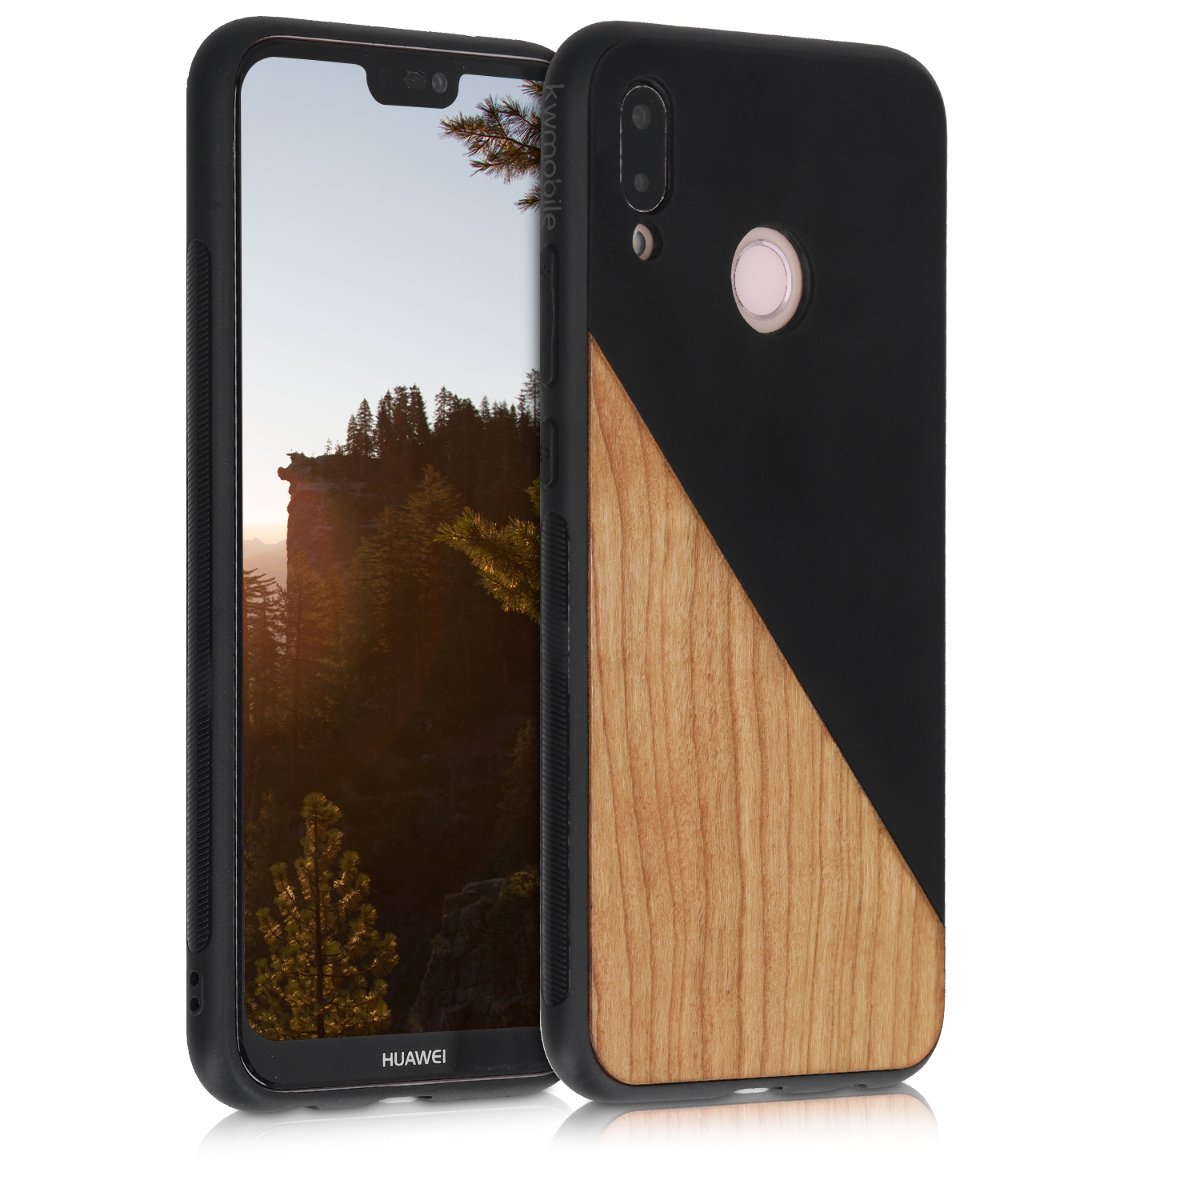 KW Σκληρή Θήκη Huawei P20 Lite - TPU Bumper and PU Leather / Wood Design - Black / Brown (50829.01)